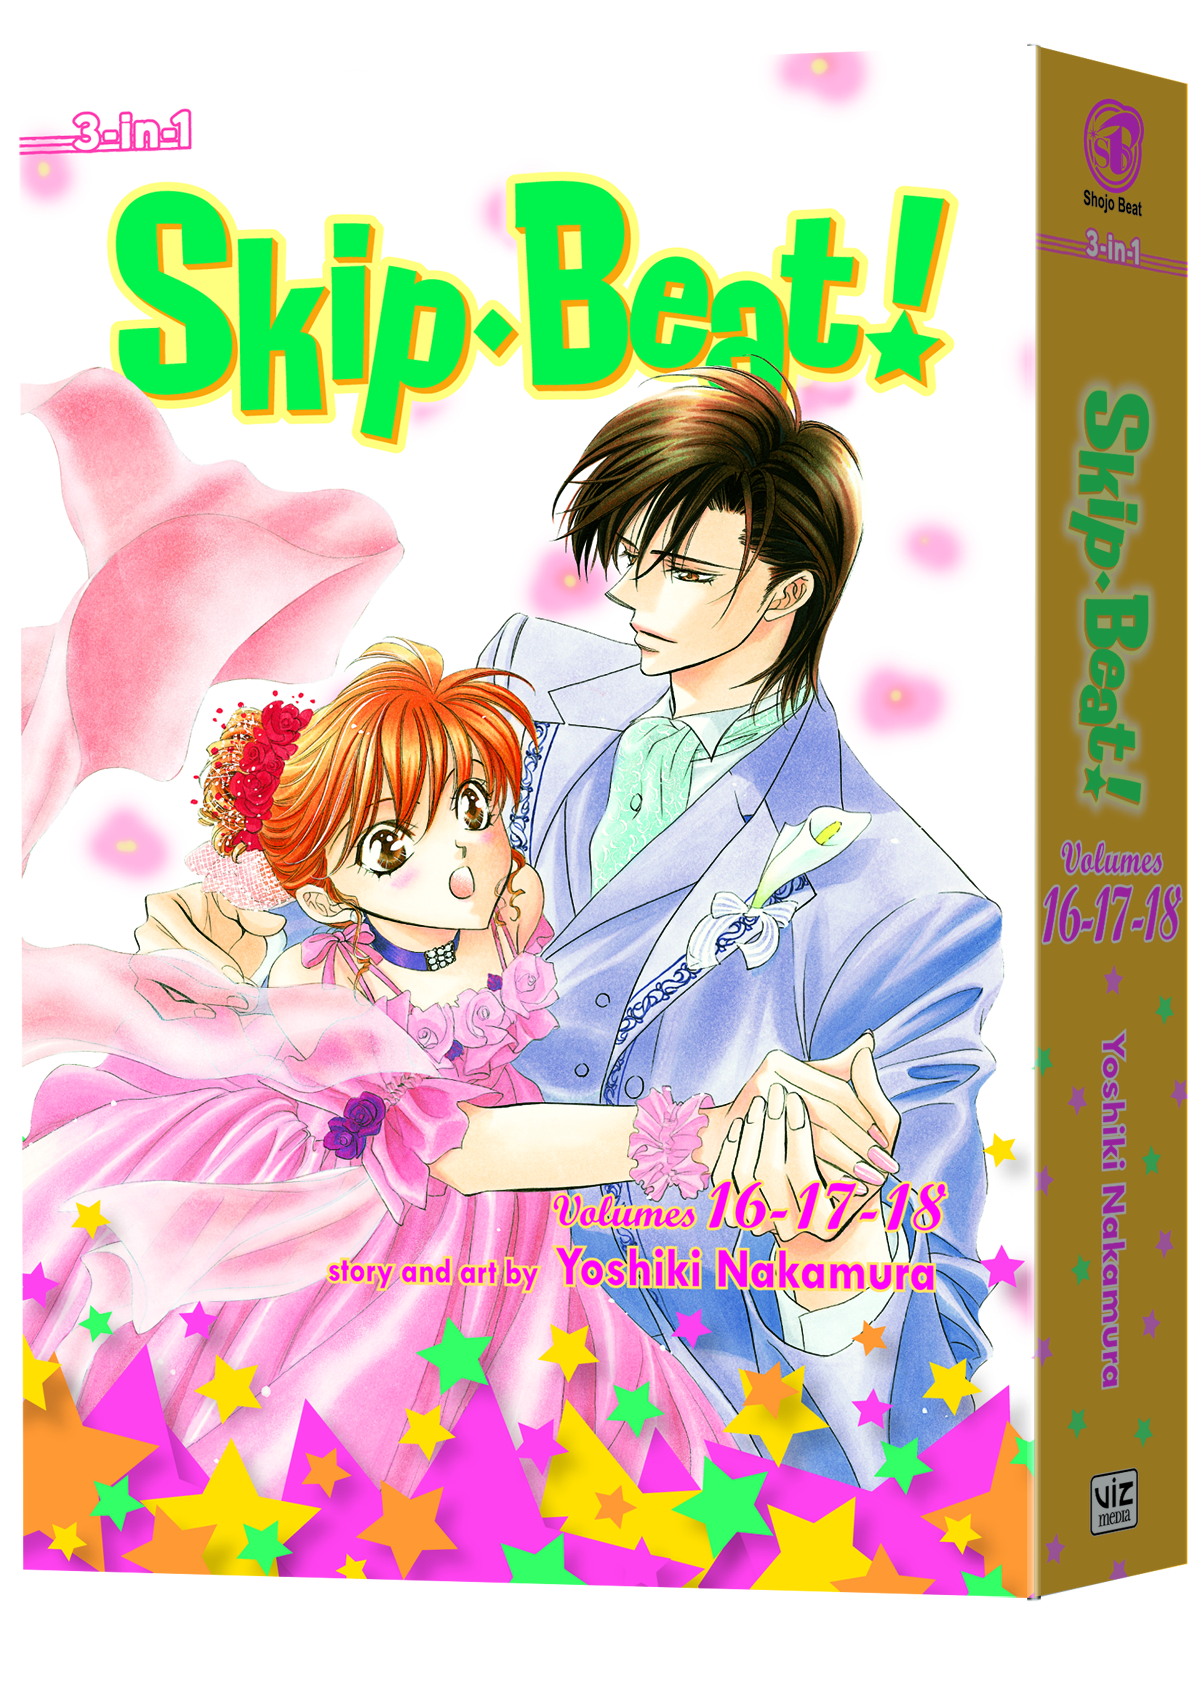 SKIP BEAT 3IN1 TP VOL 06